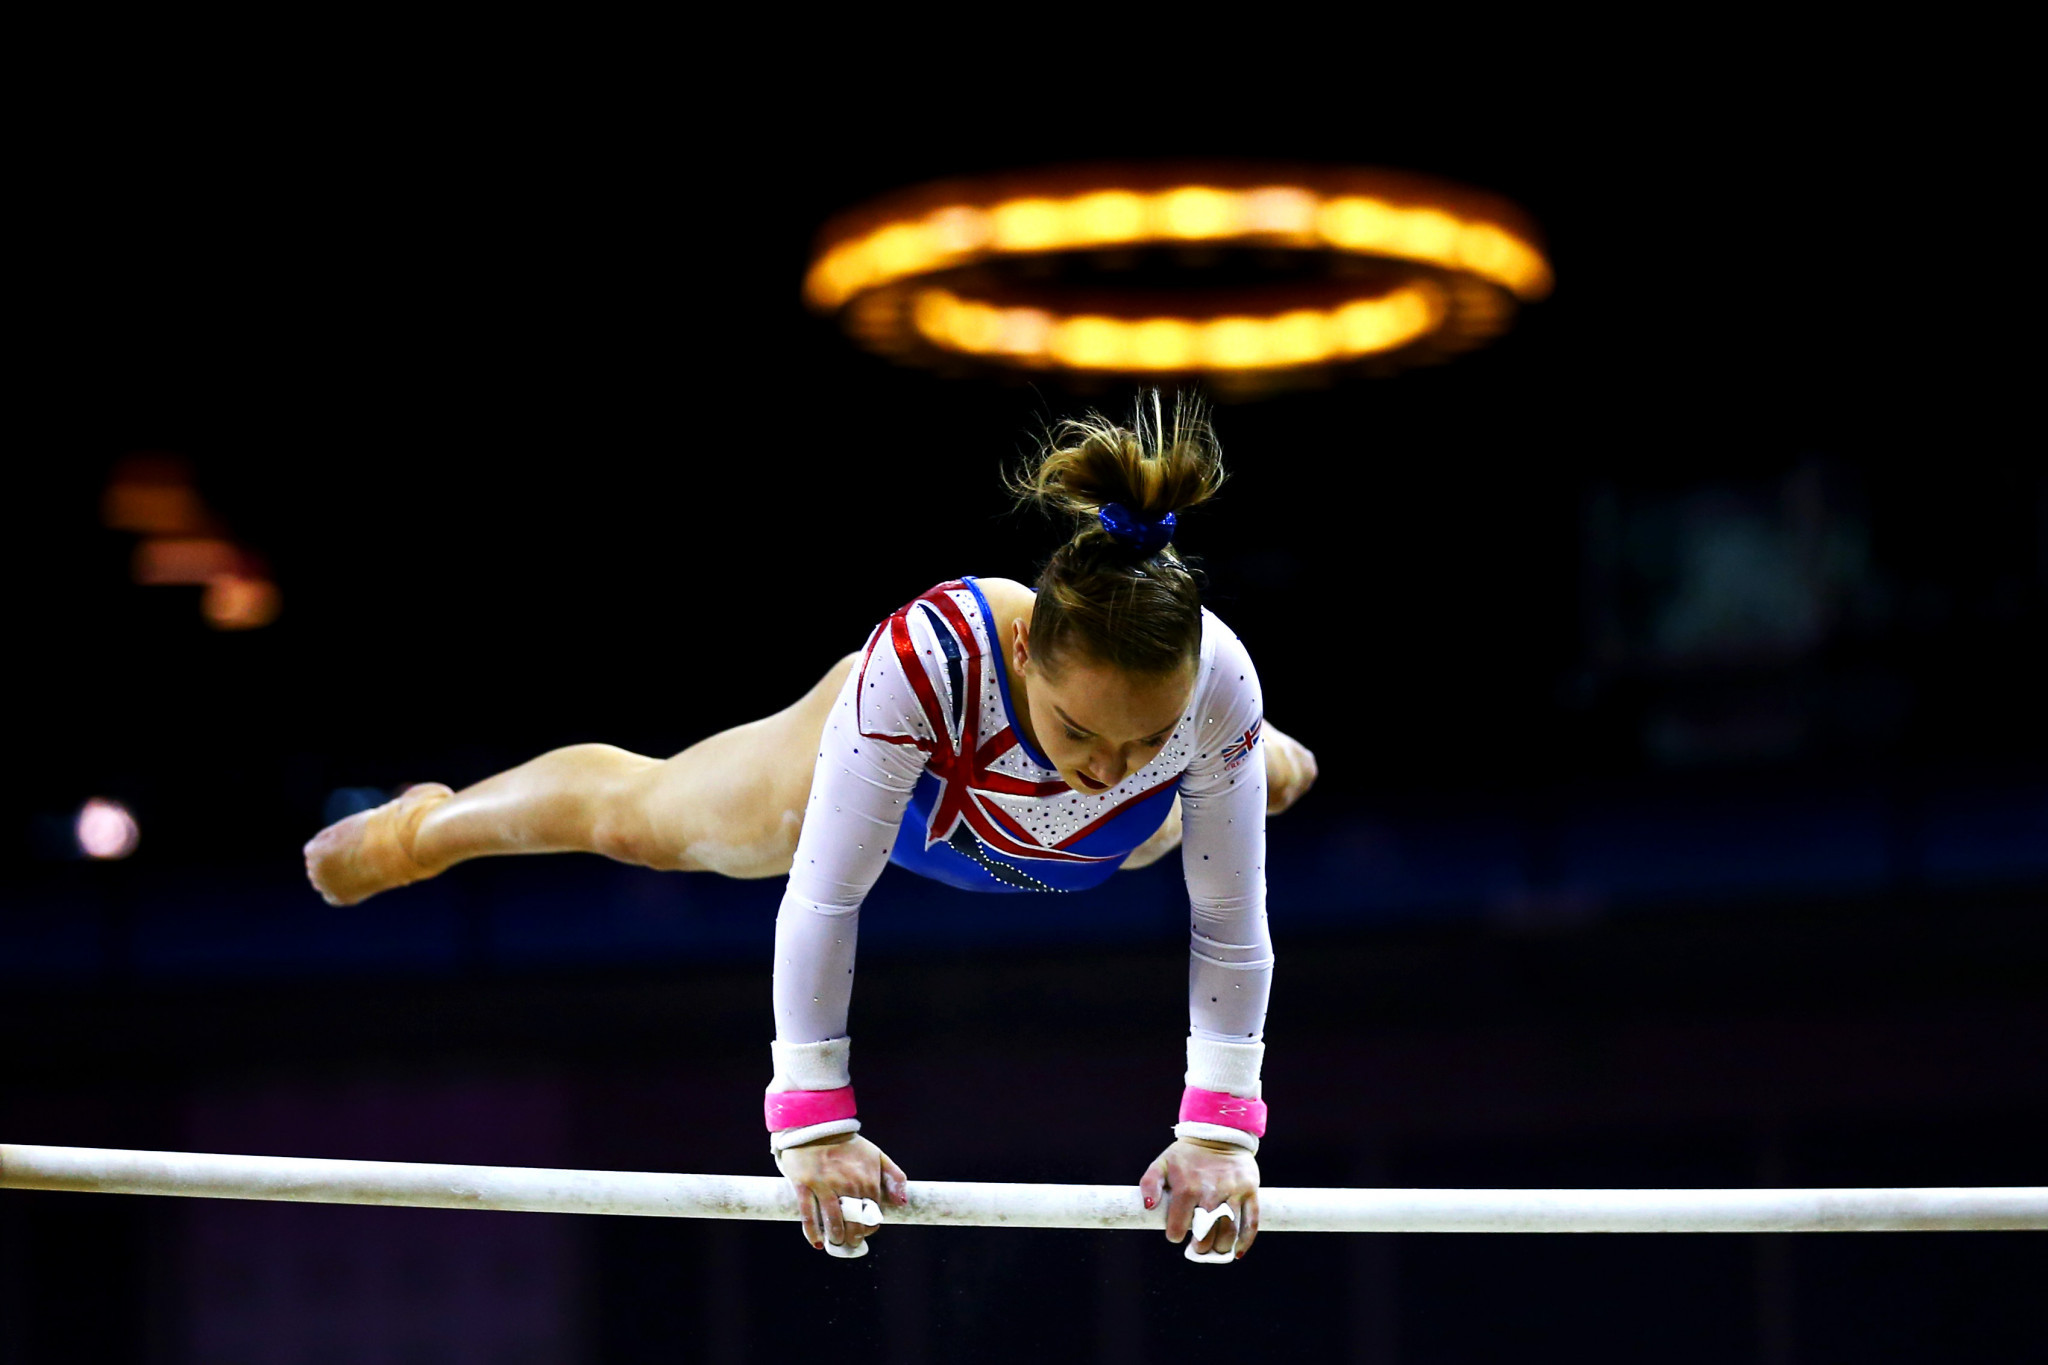 """Tinkler claims she would """"give up"""" Olympic medal to change gymnastics experience"""